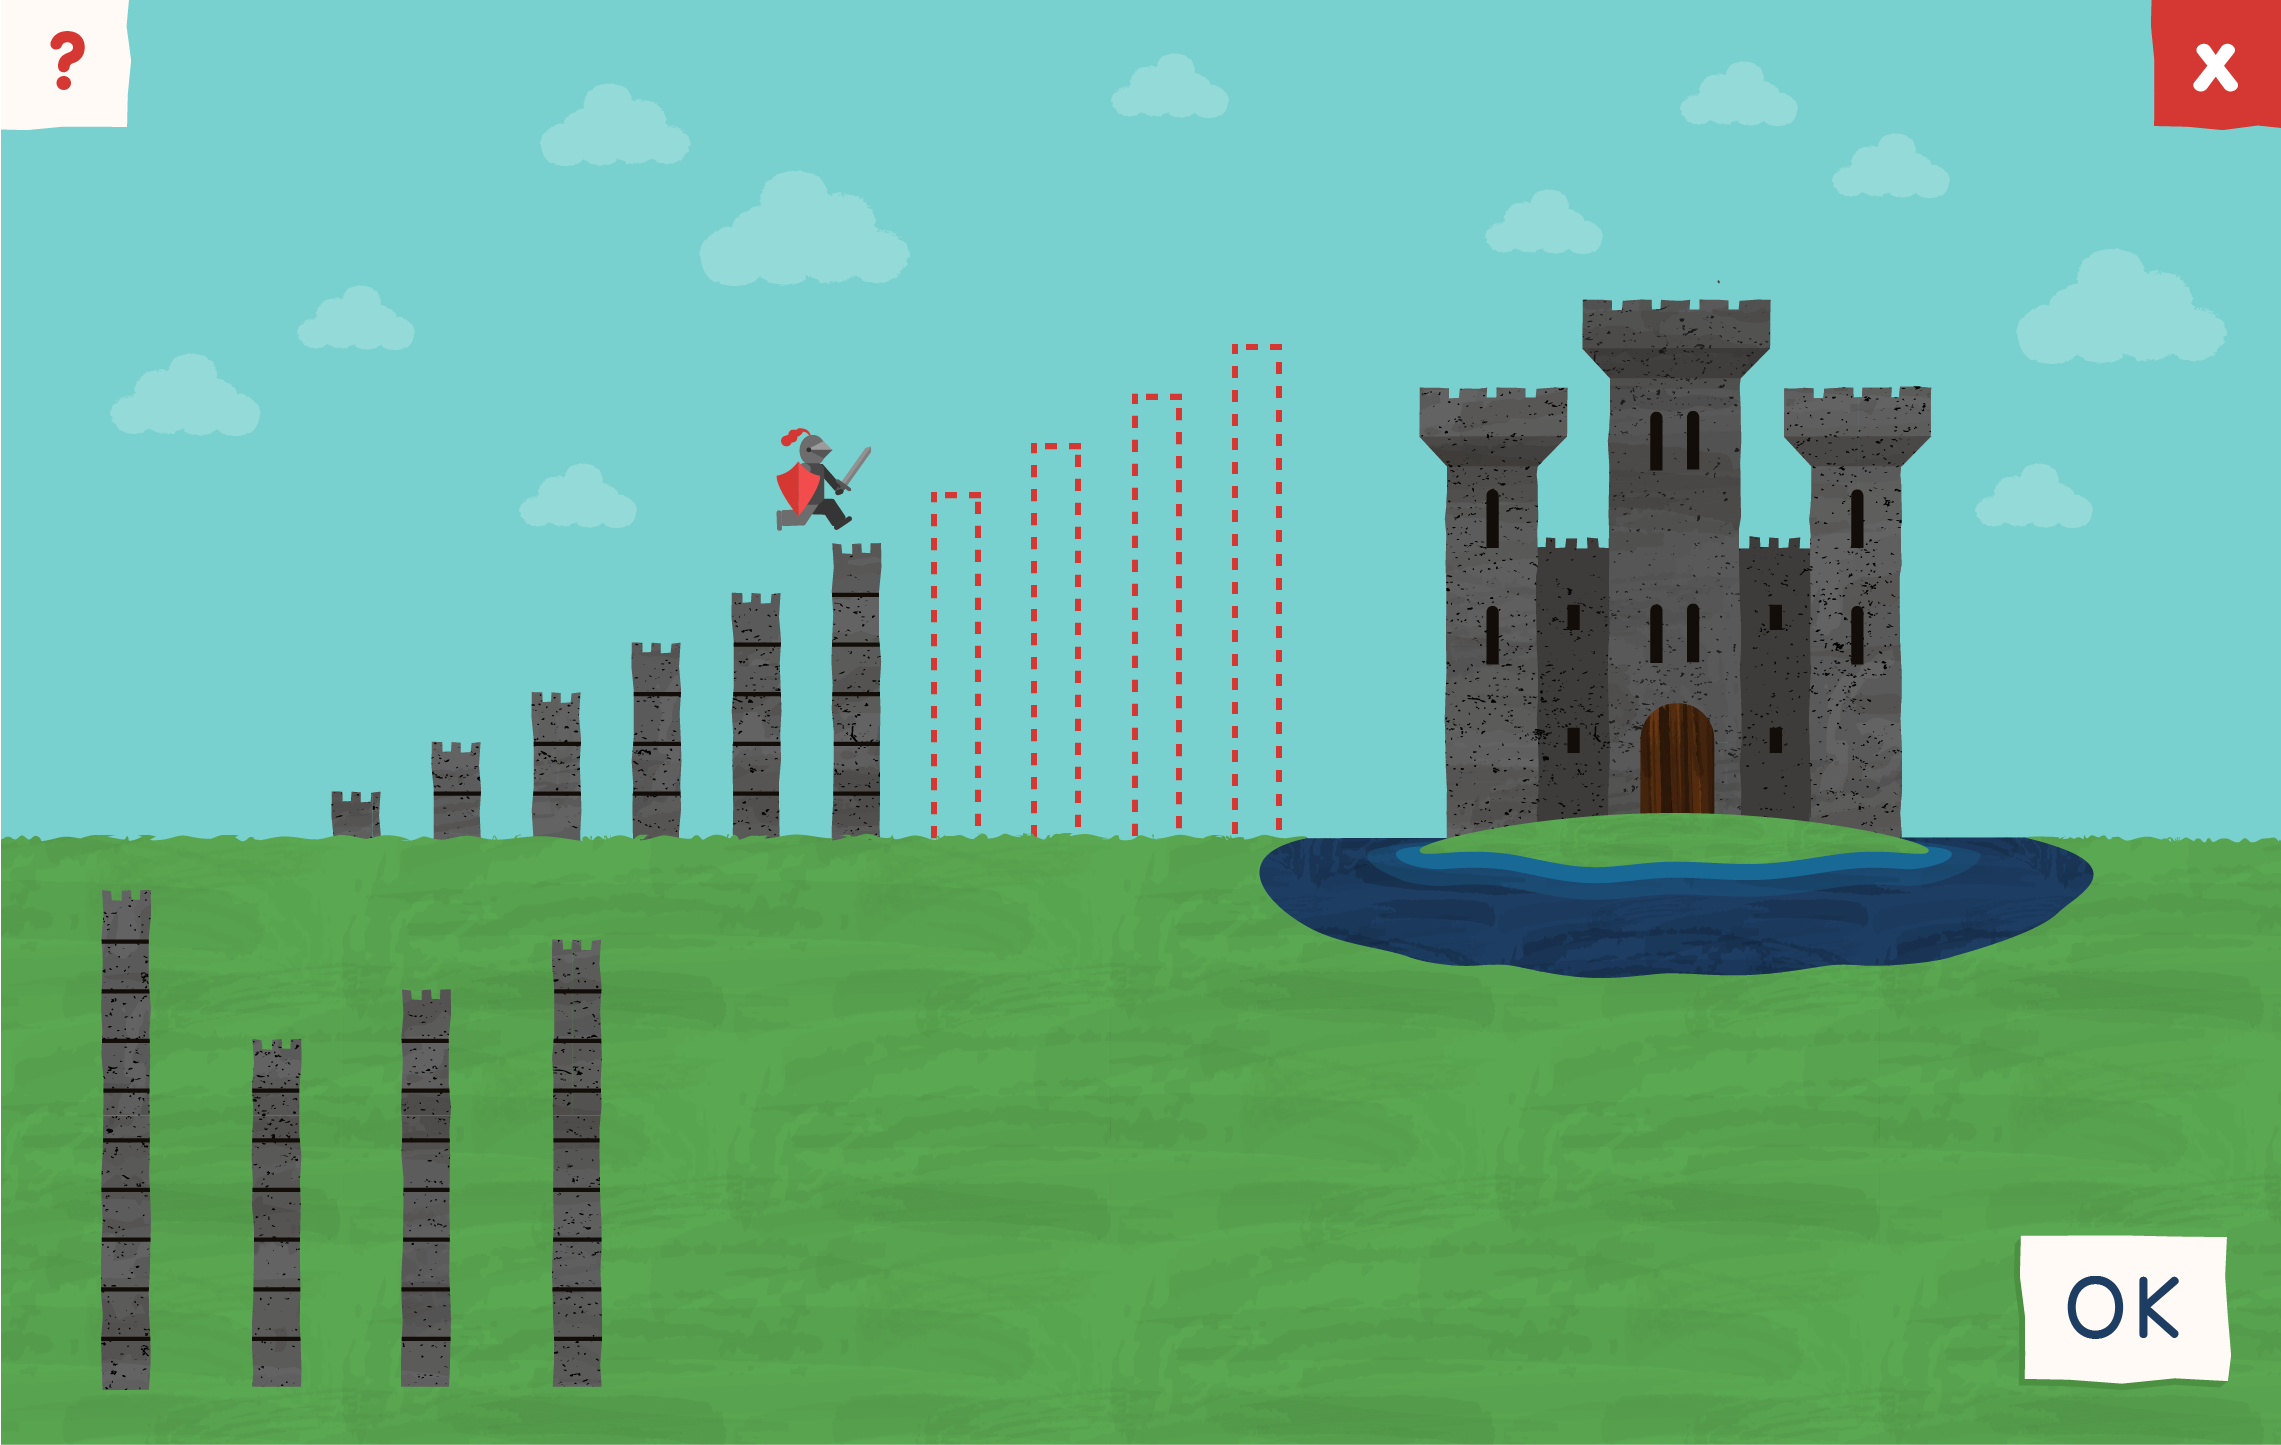 Connect4Learning's game screen with a castle, towers and knight